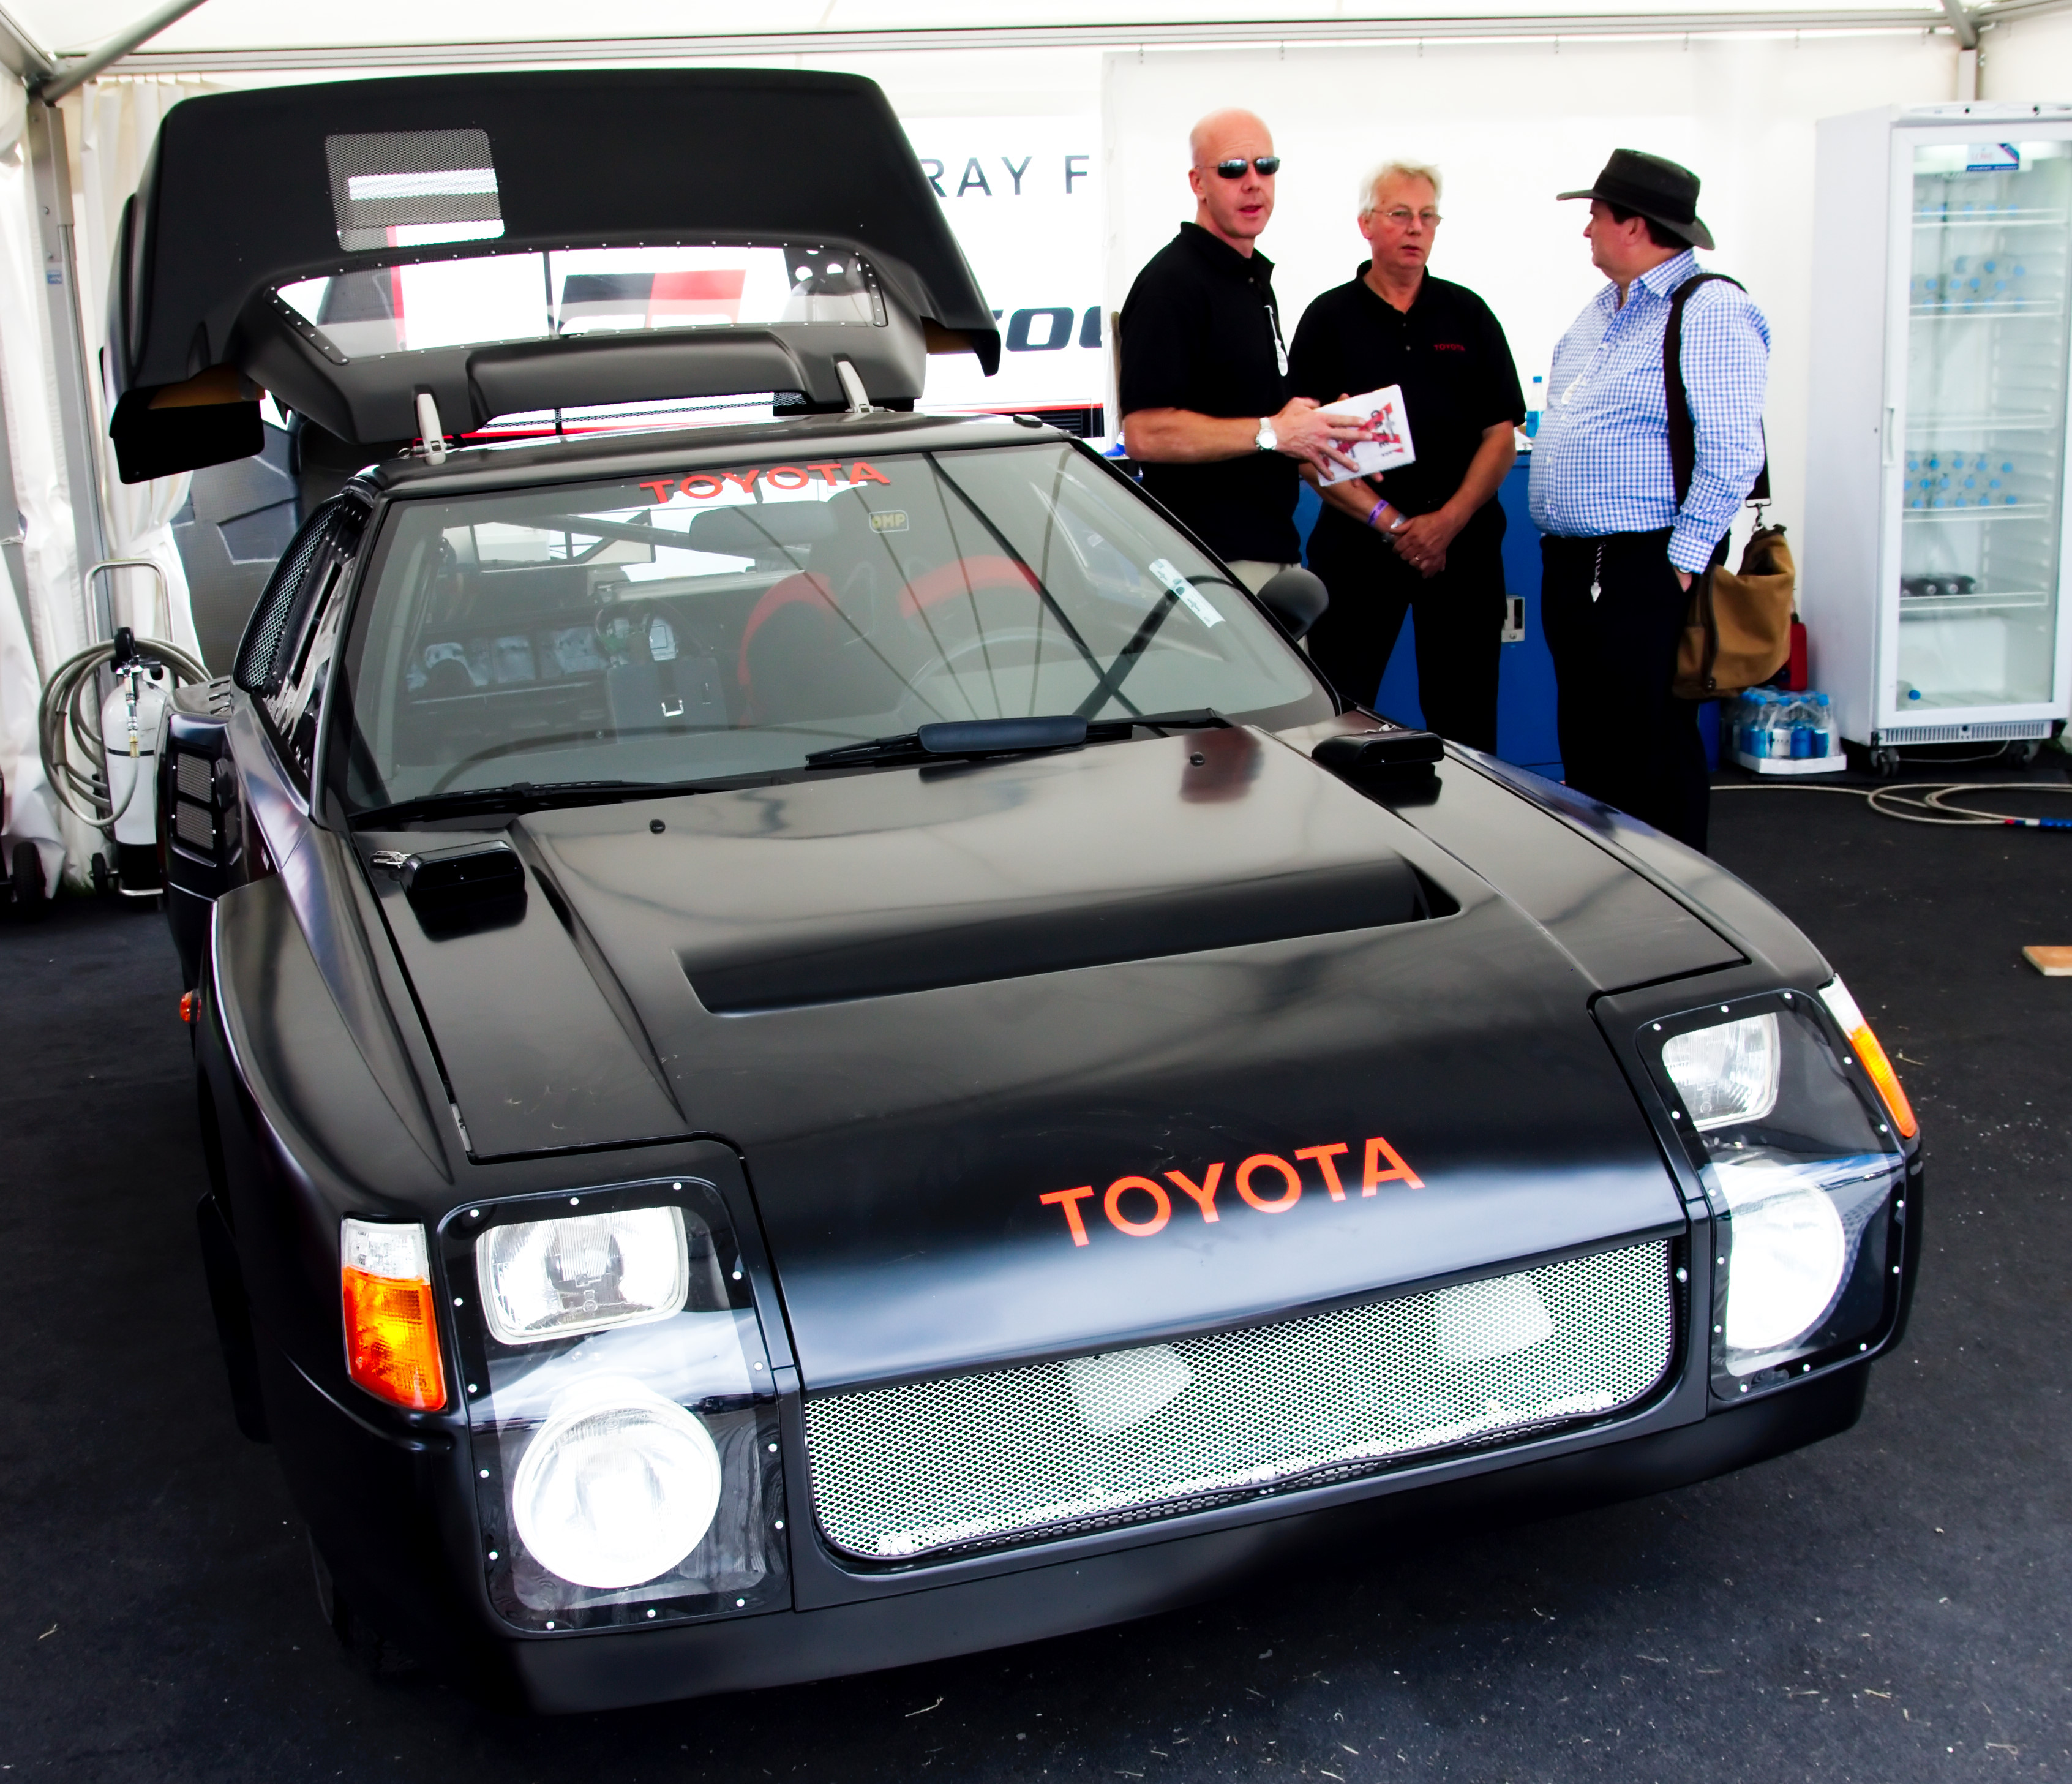 file:toyota wrc group s 222d mr2 prototype - flickr